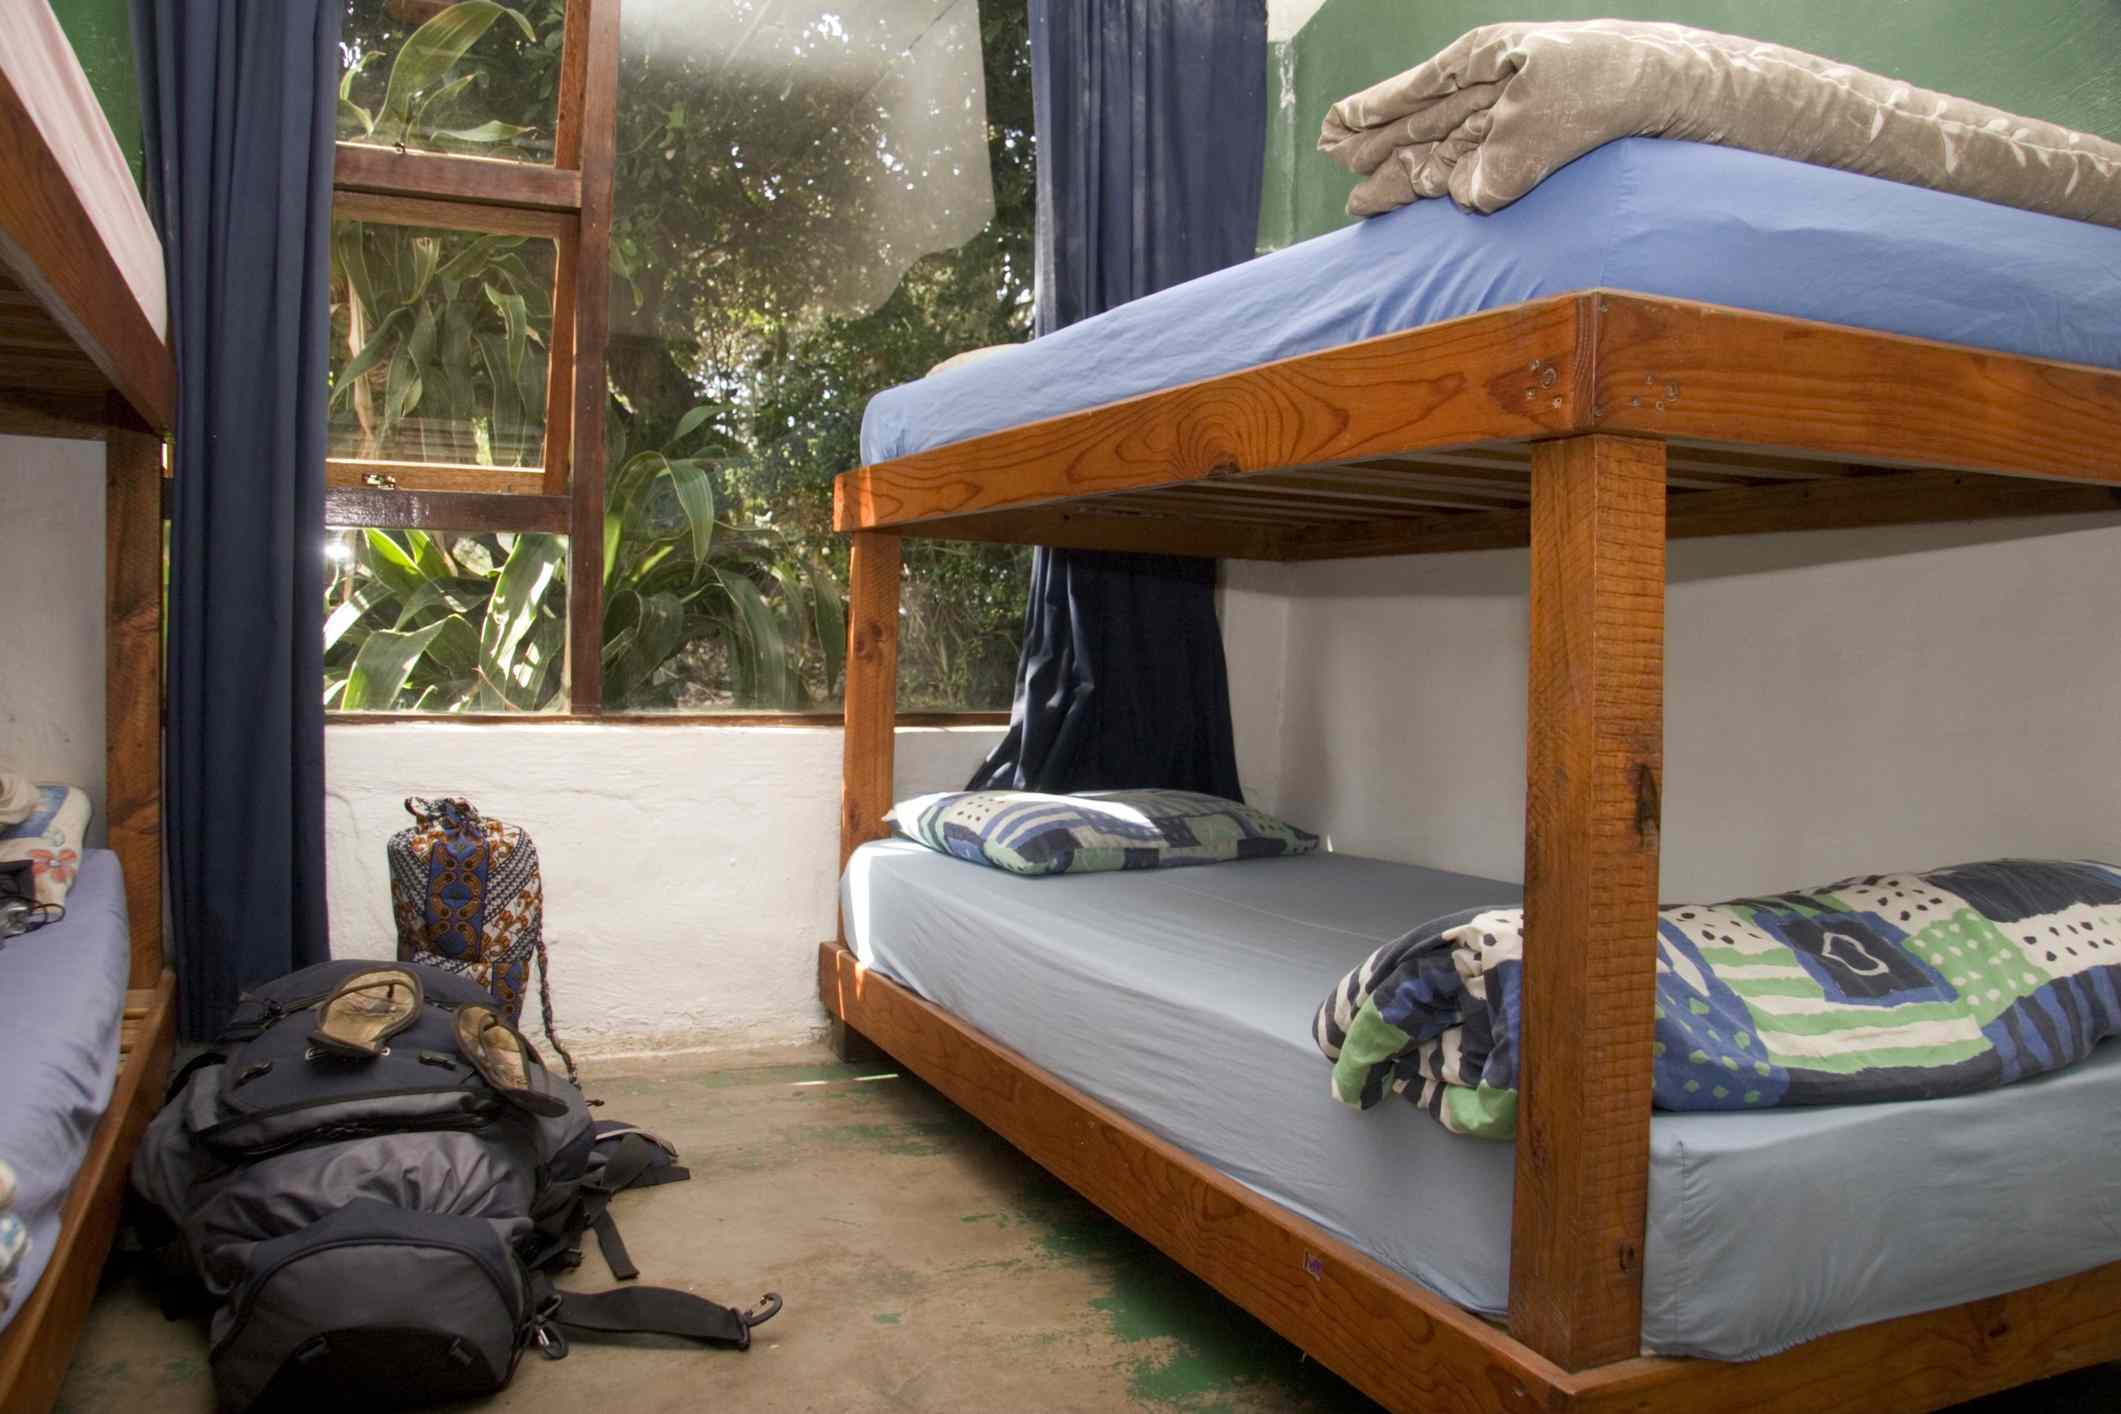 A typical dorm room in a hostel. This one is Coffee Shack Hostel in South Africa.